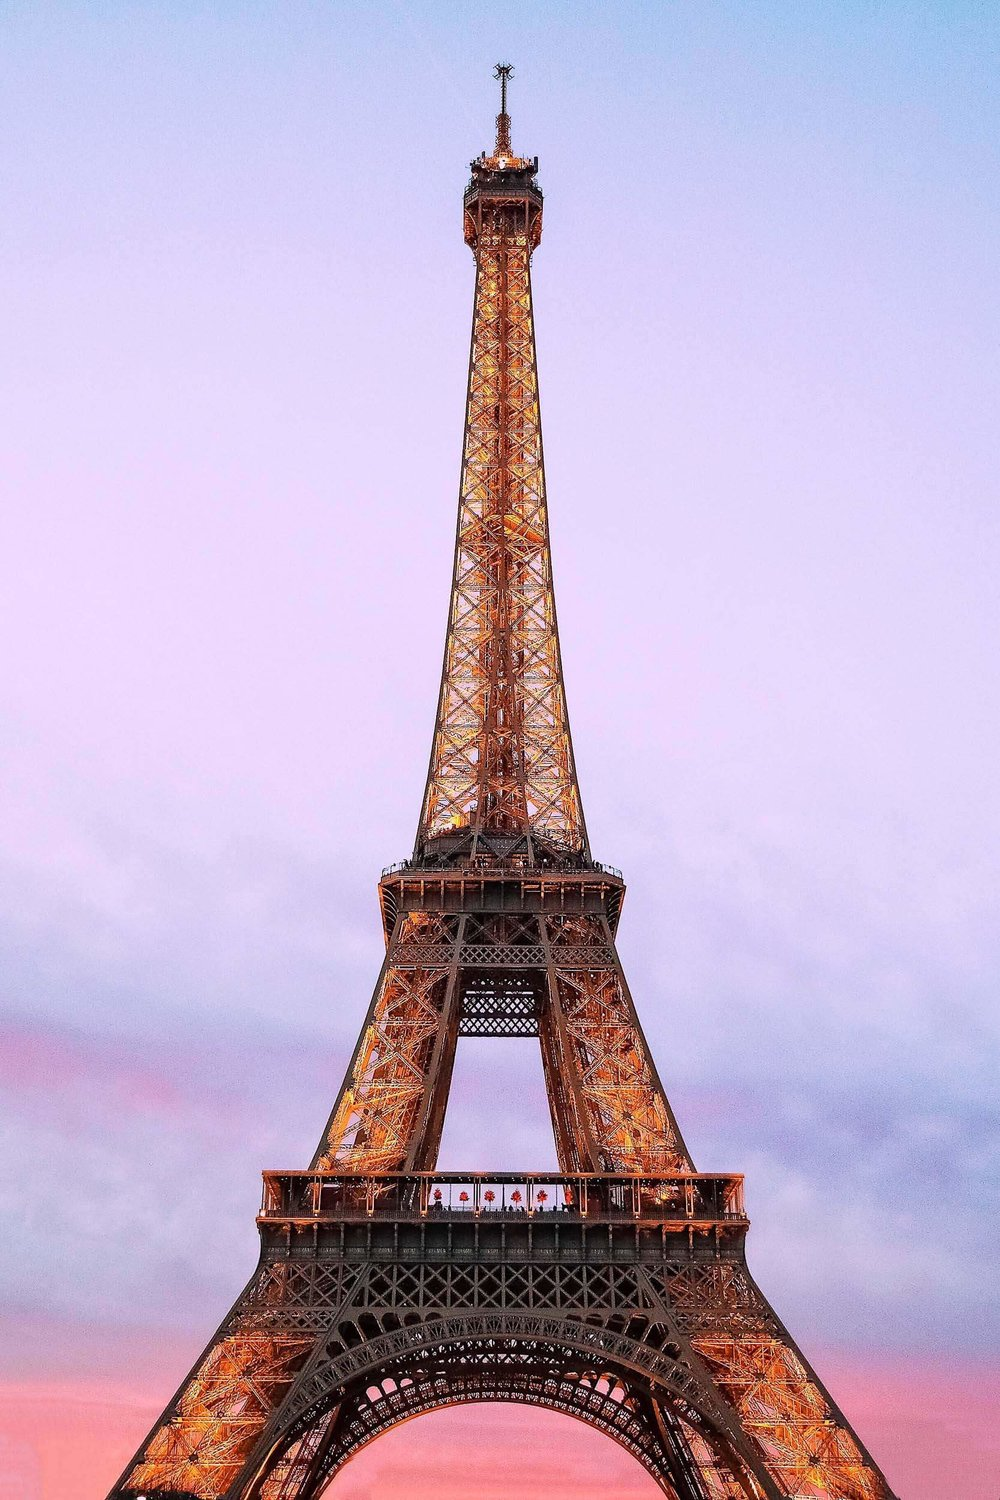 Where to spend one week in Europe? Paris and London